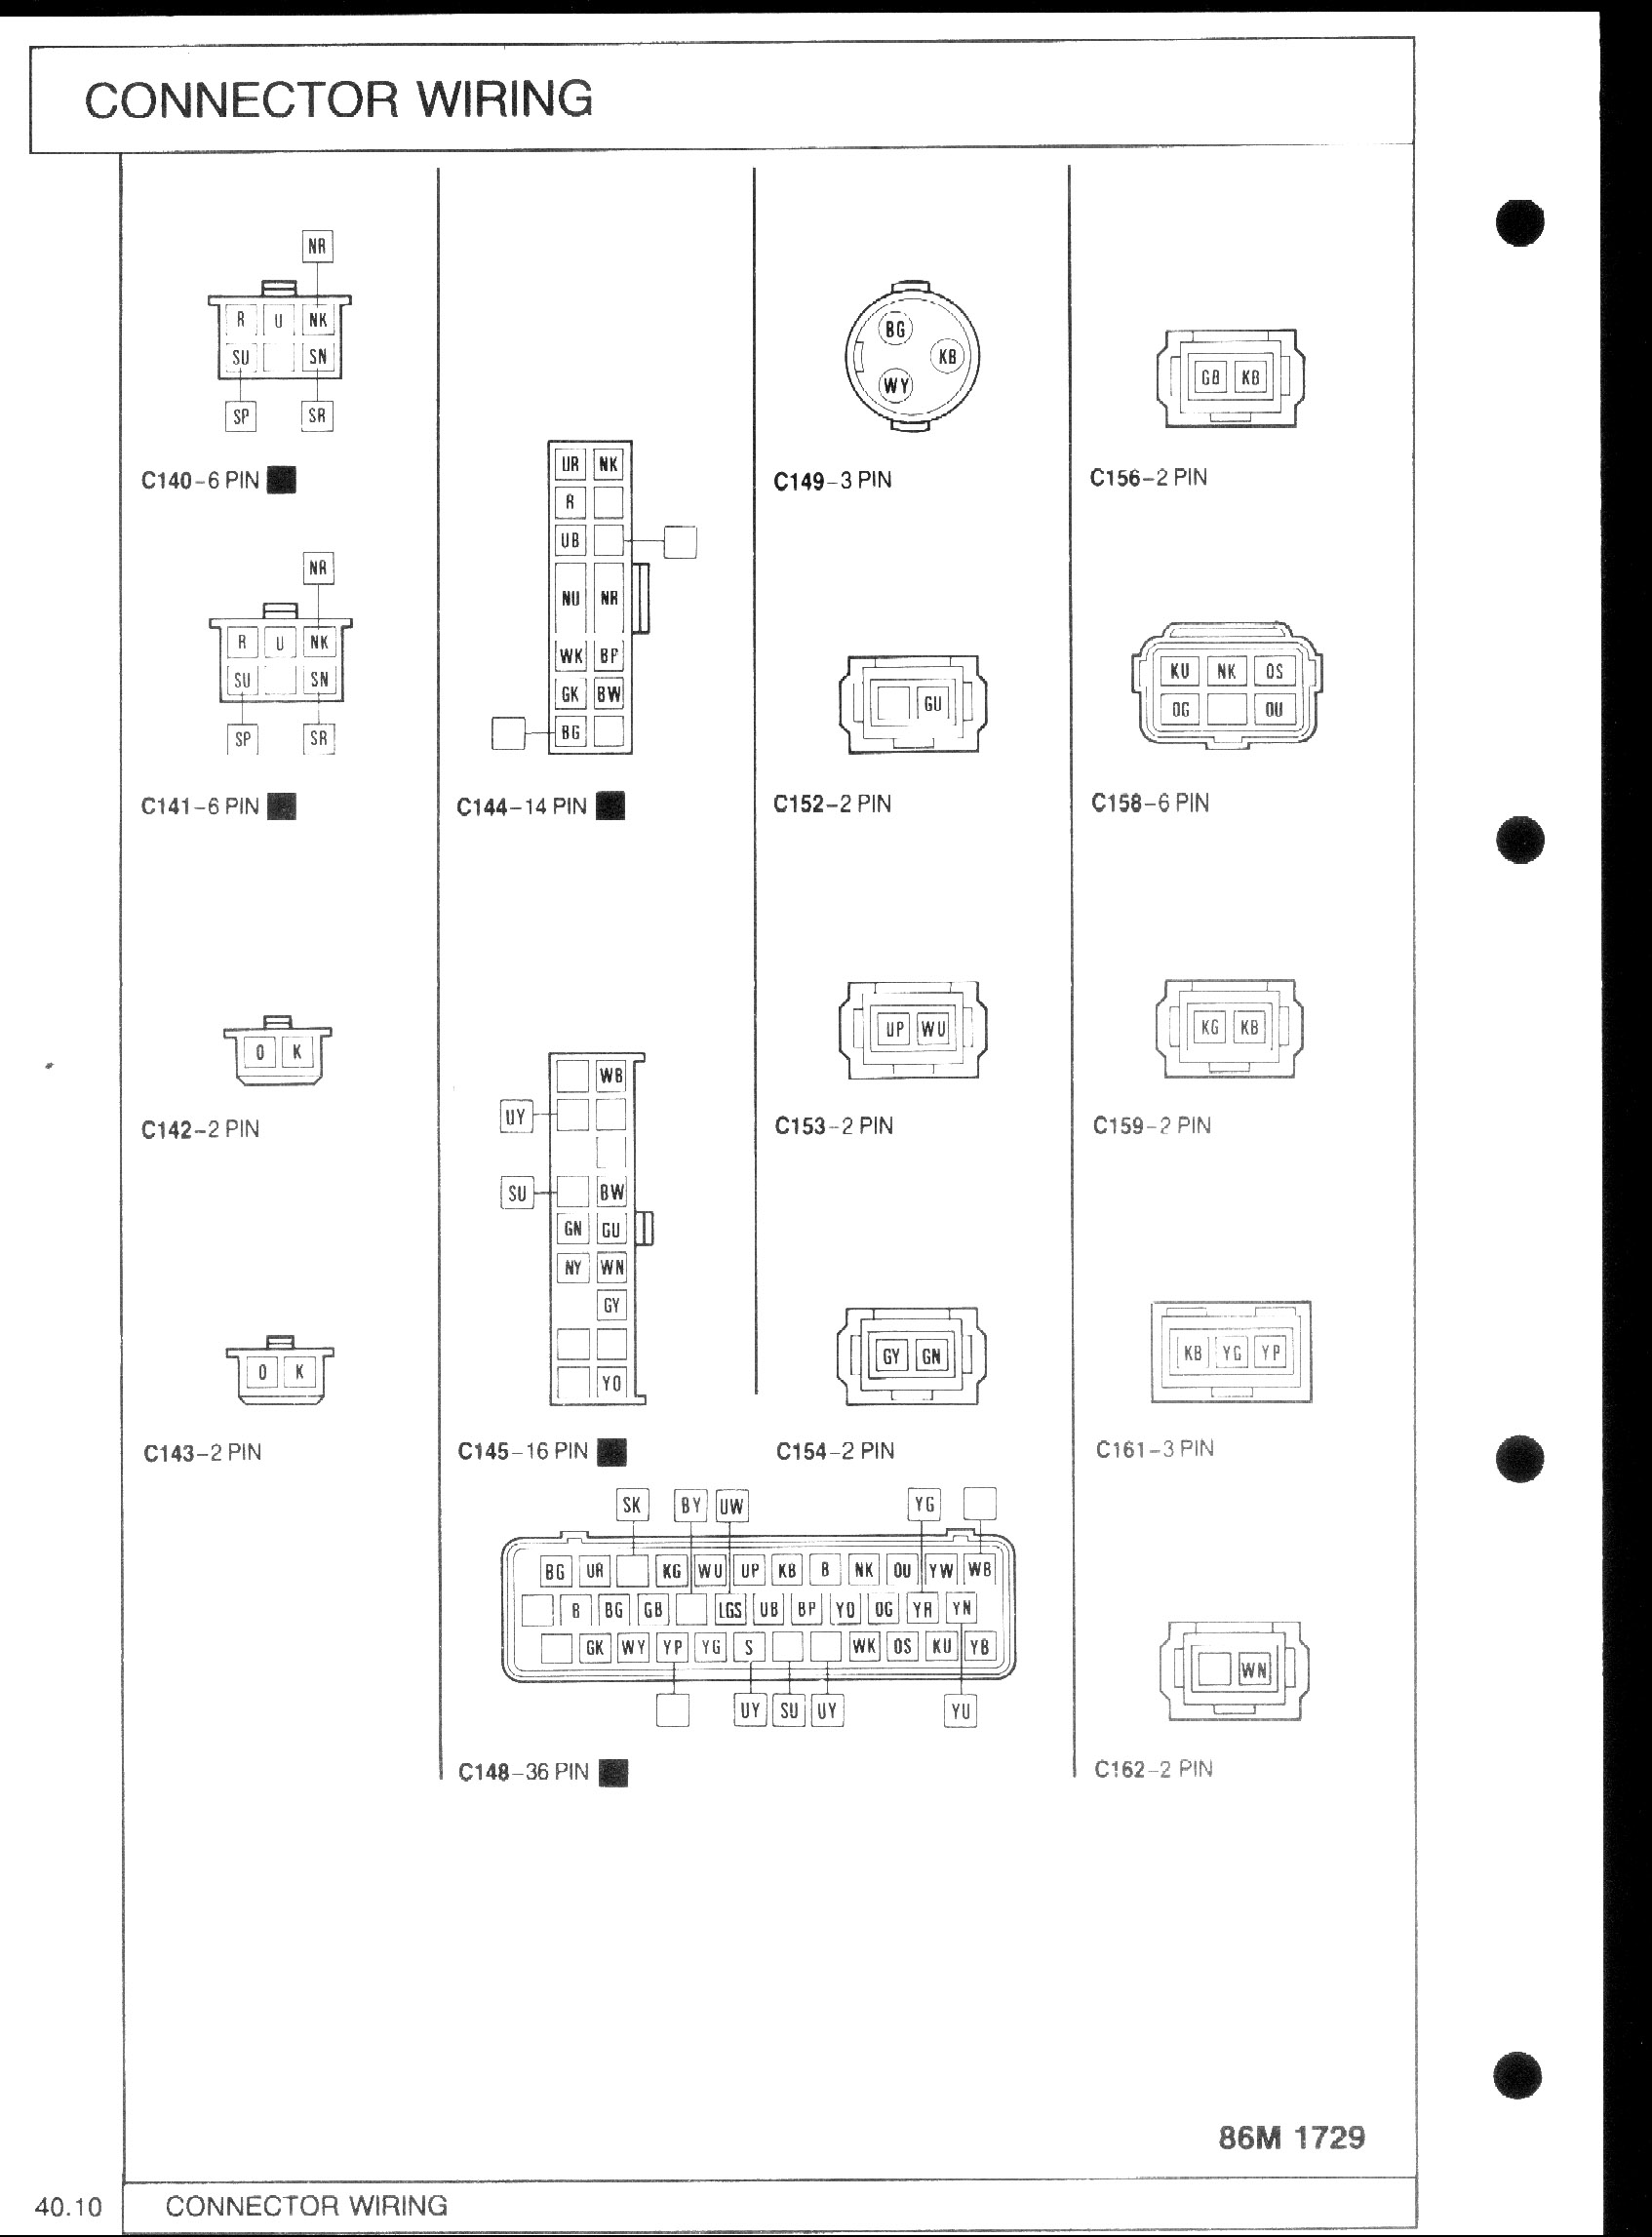 Peugeot 306 Cabriolet Roof Wiring Diagram 41 Images Rover 220 Ecuconnector Rovertech Net U2022 View Topic Diagrams 200 400 R8